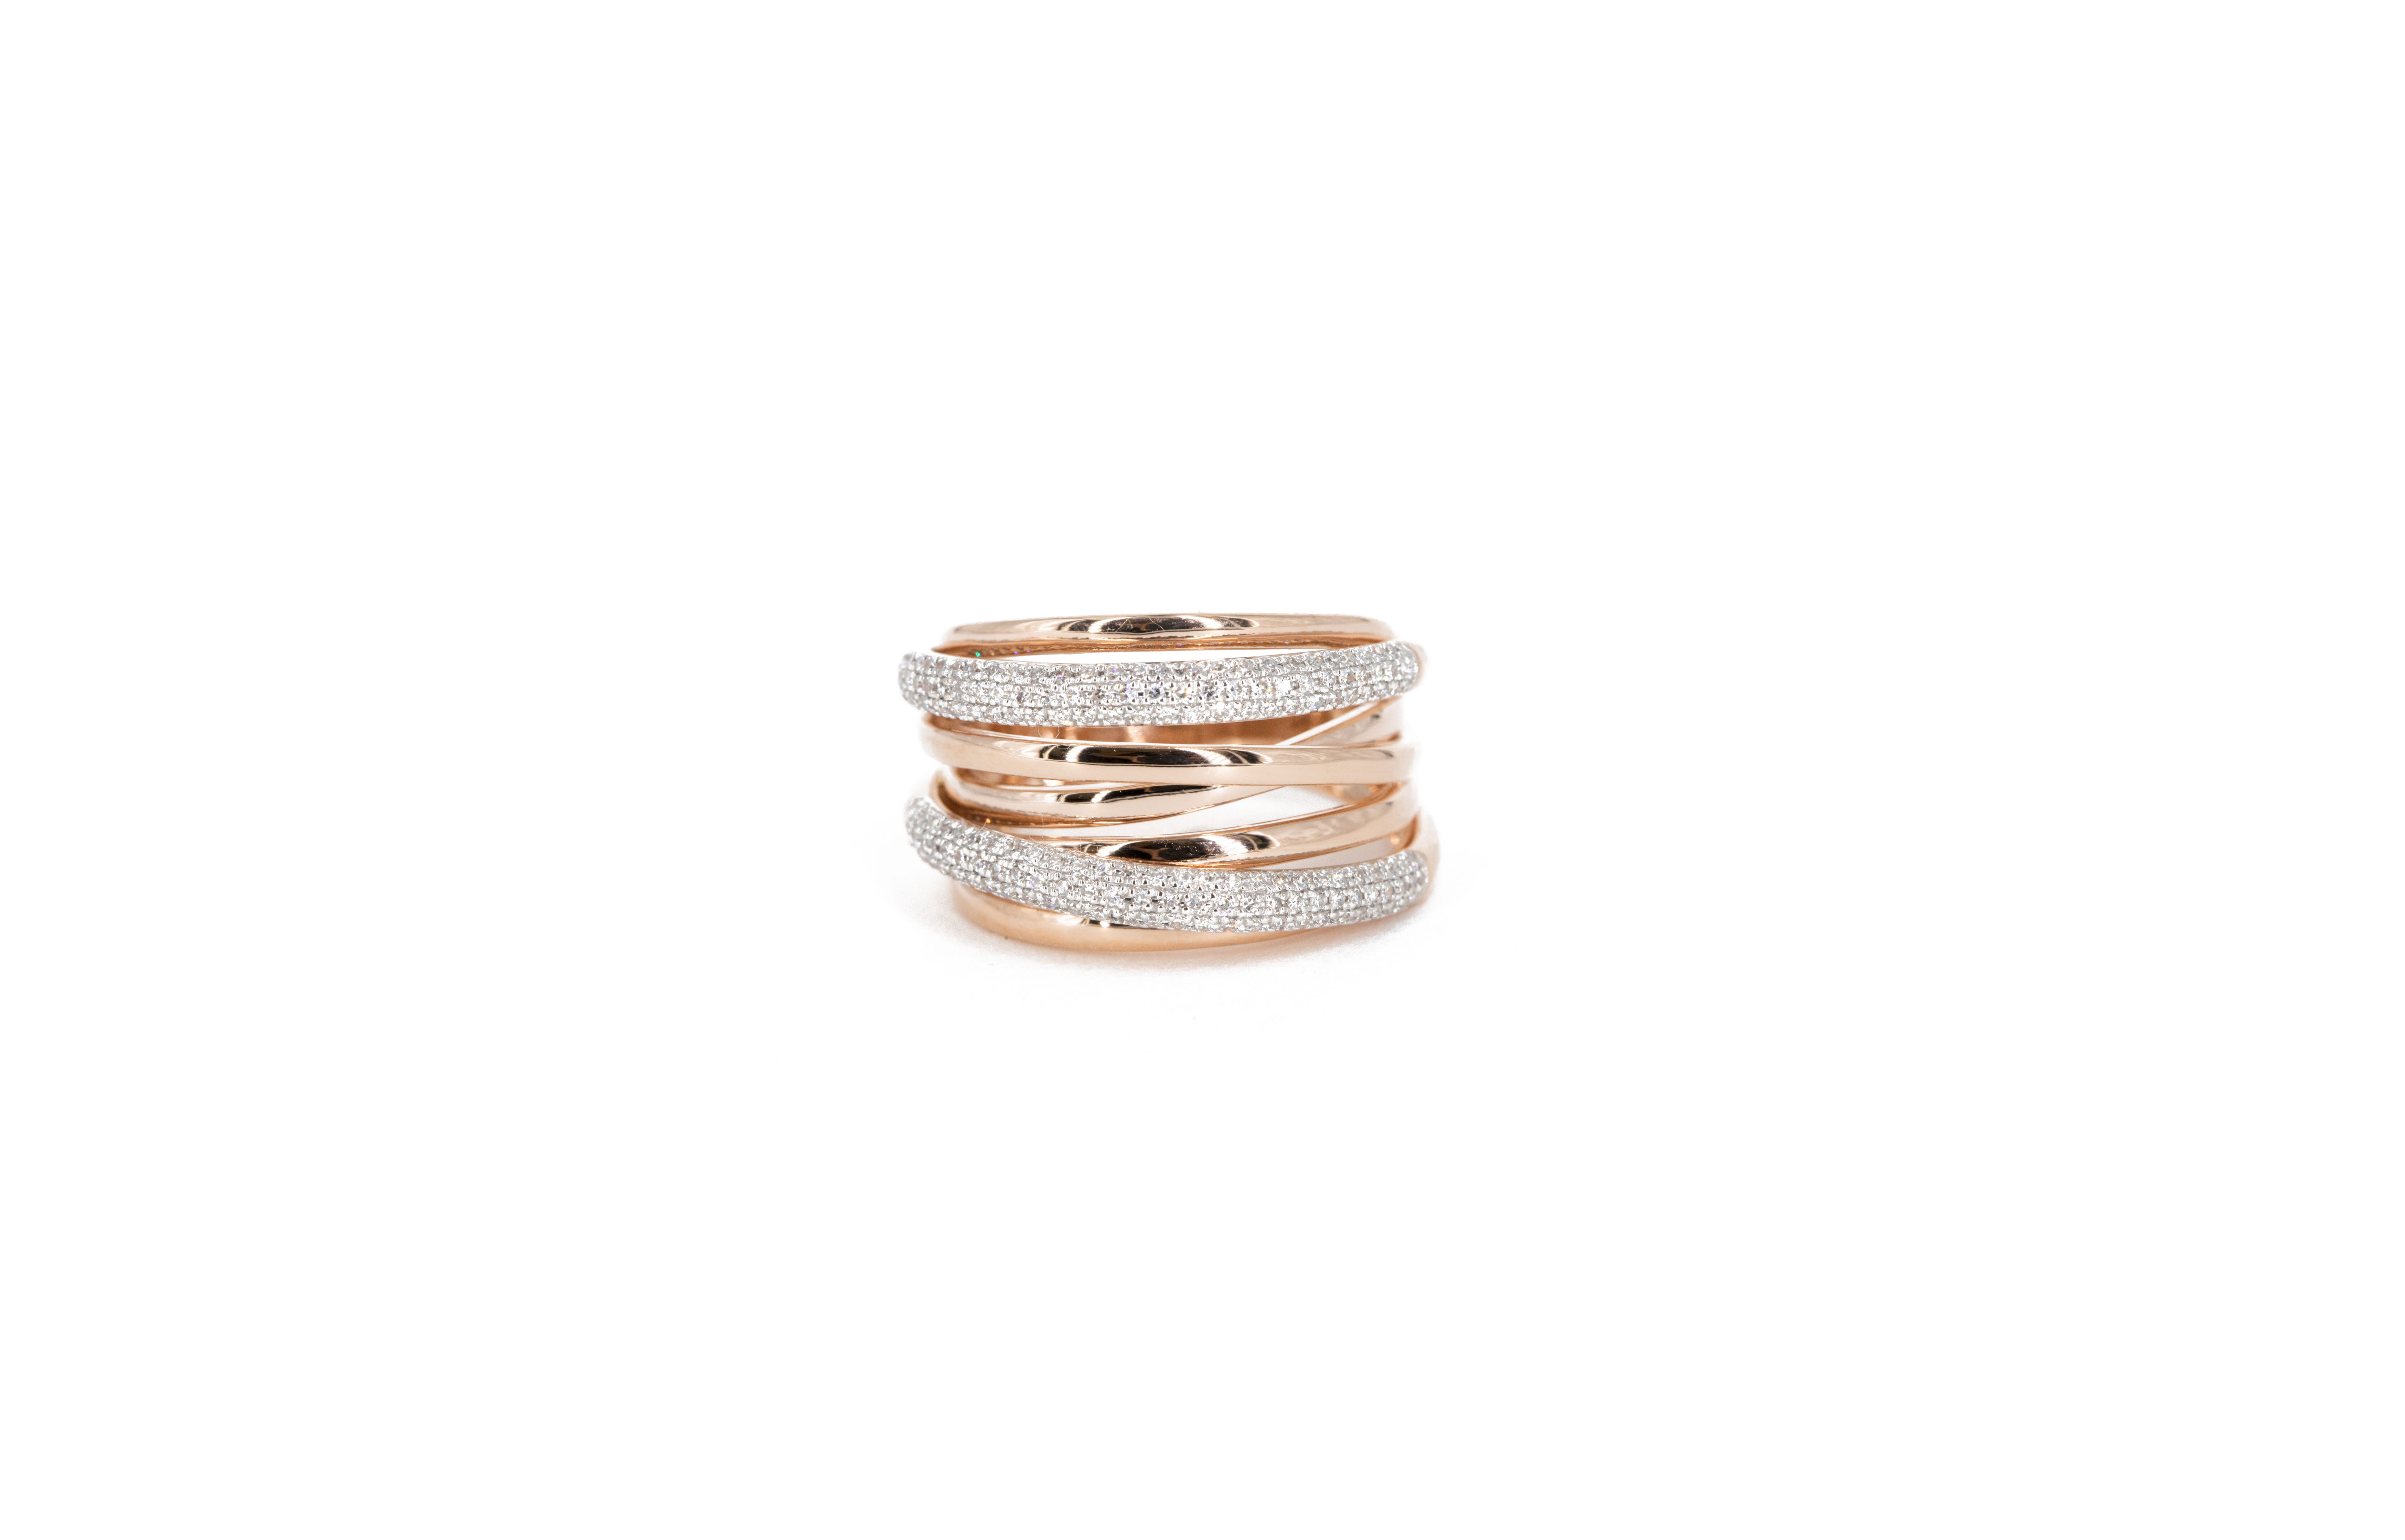 andrea groussman alternative wedding bands